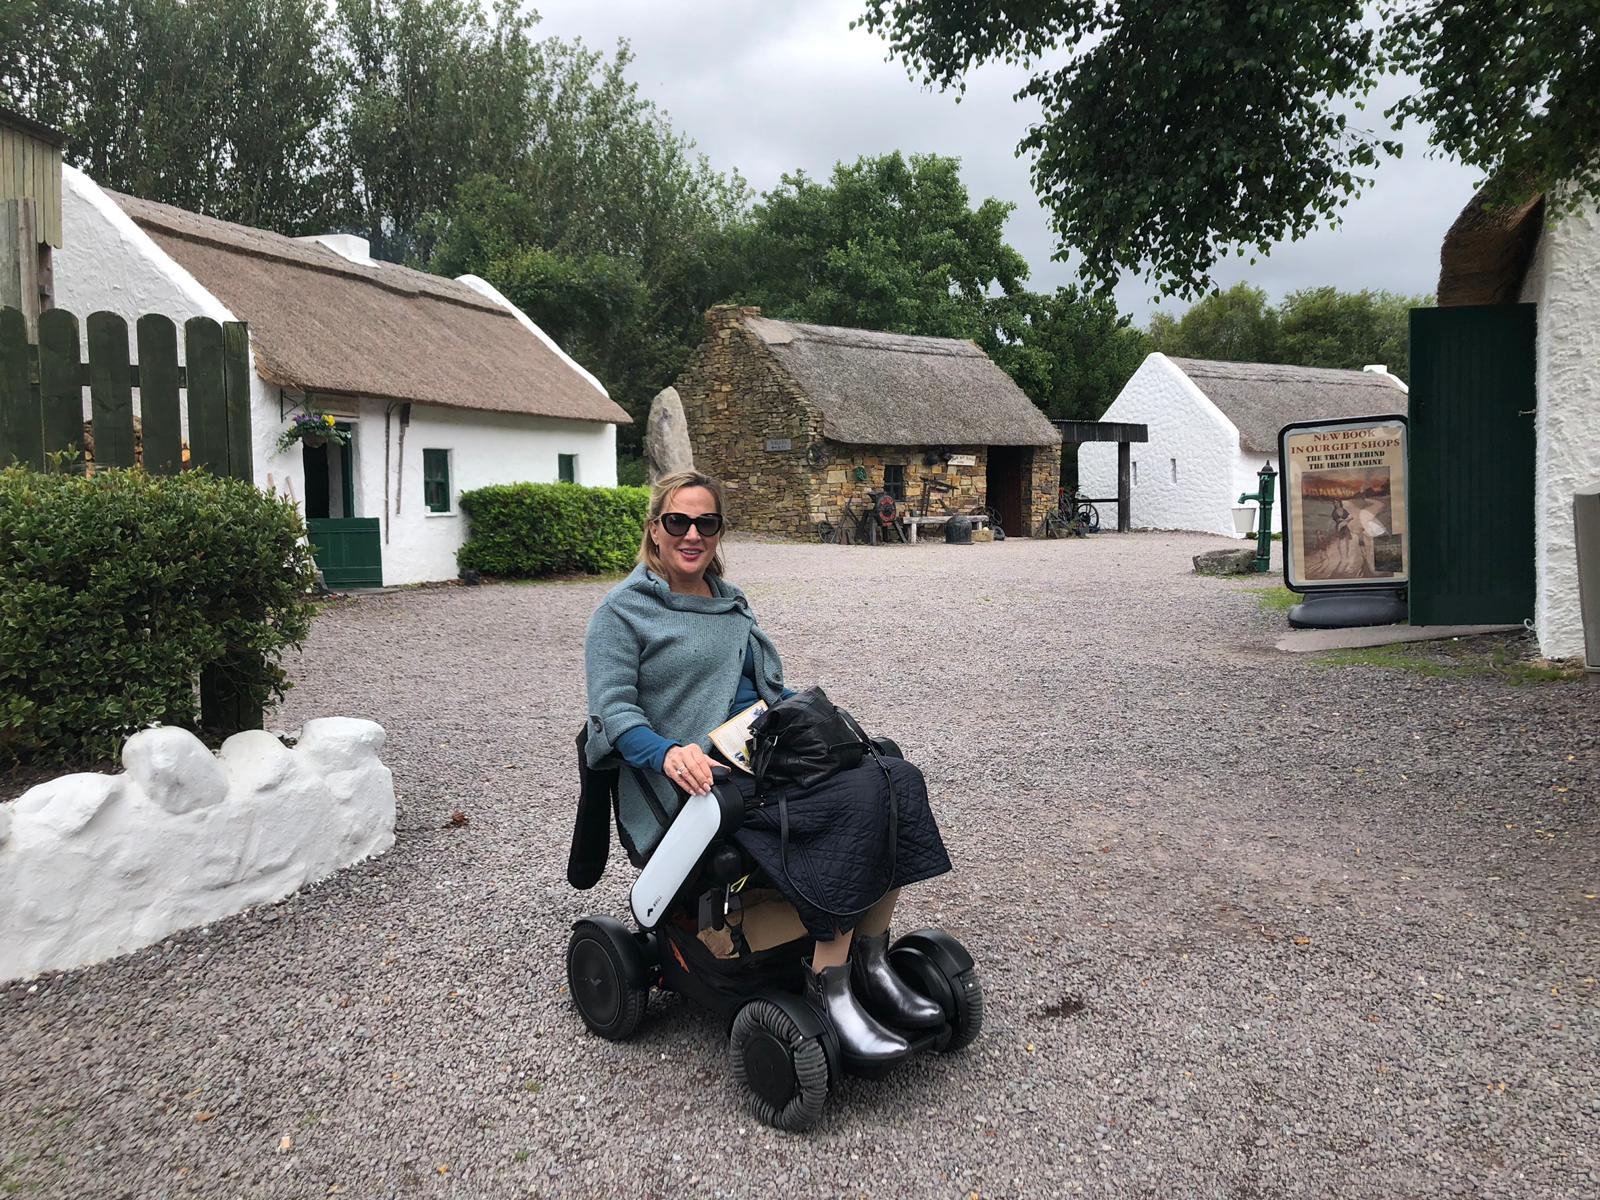 Ireland Day 9 10 - PUSHLiving Ireland 2019: Day 8-10 Killarney & Ring of Kerry